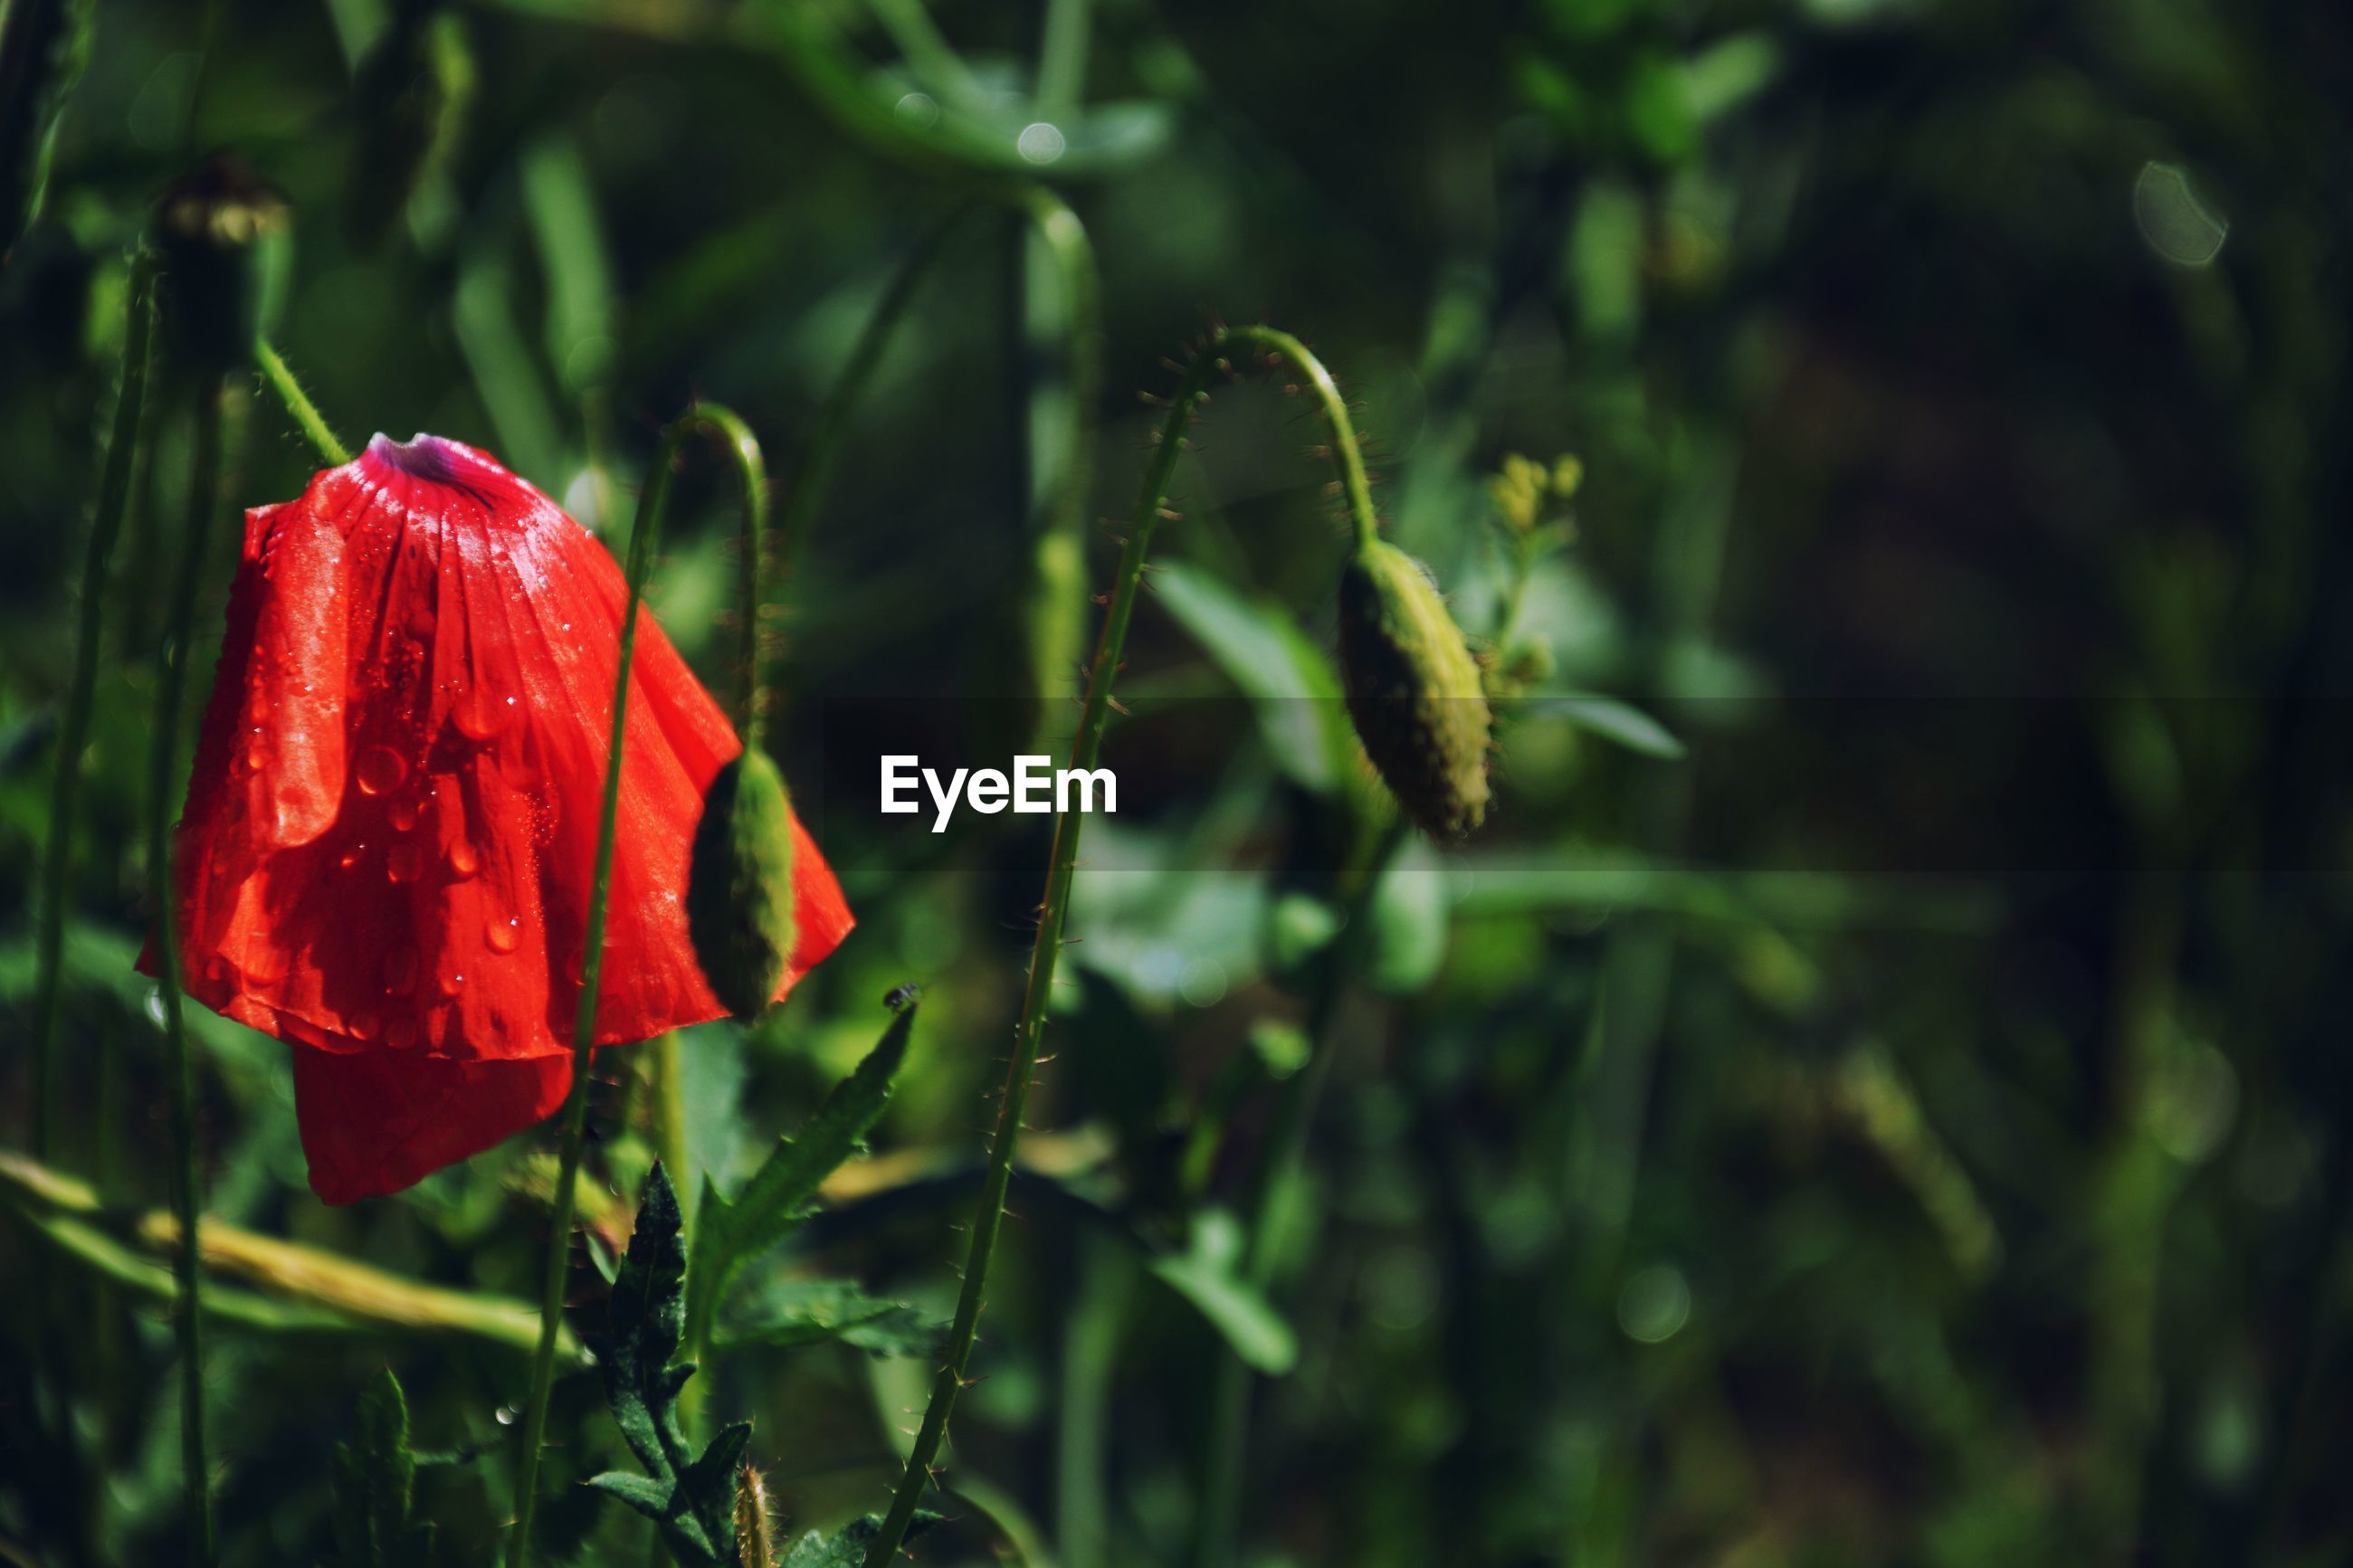 CLOSE-UP OF RED FLOWER ON PLANT